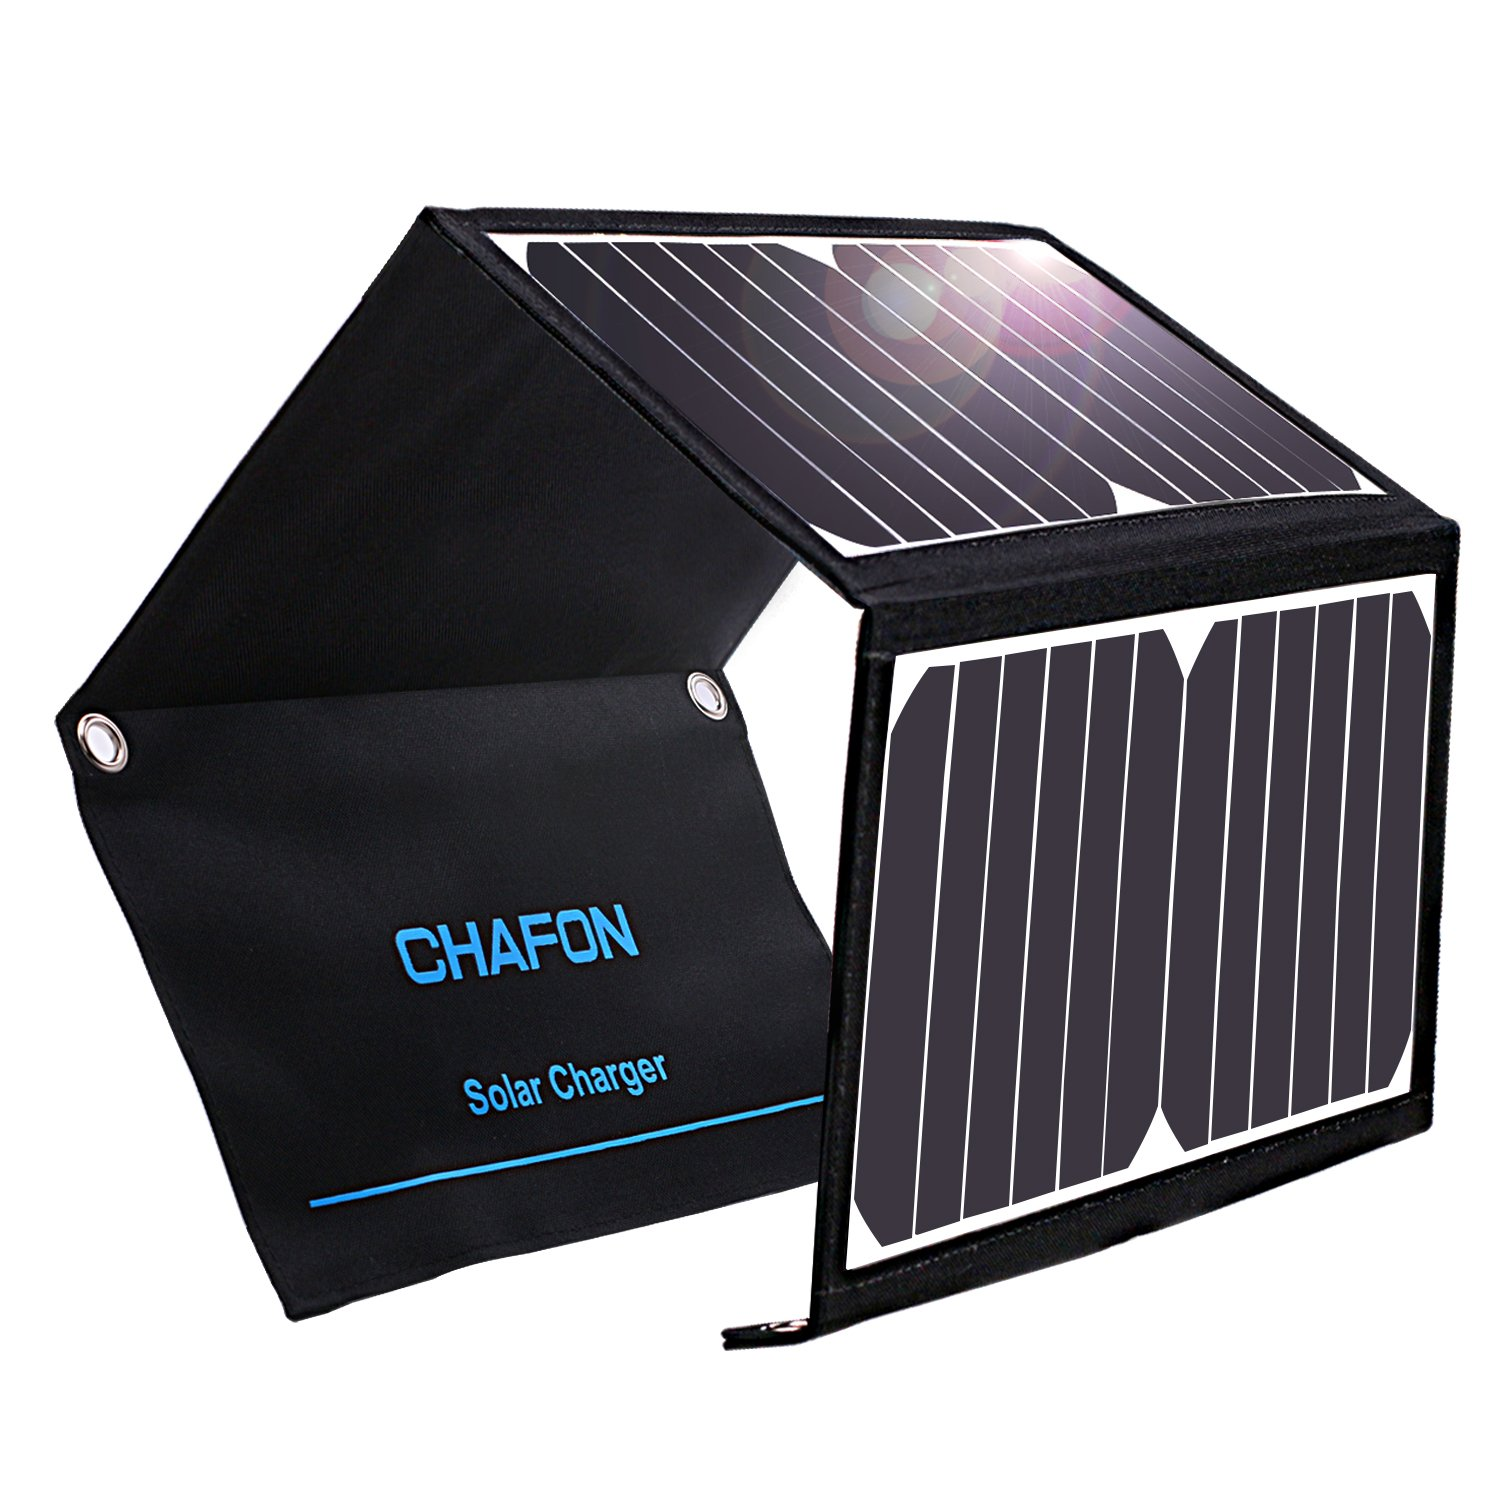 Solar Charger, Chafon 22W Dual USB Foldable Solar Panel for Smartphones and More CF-A30004